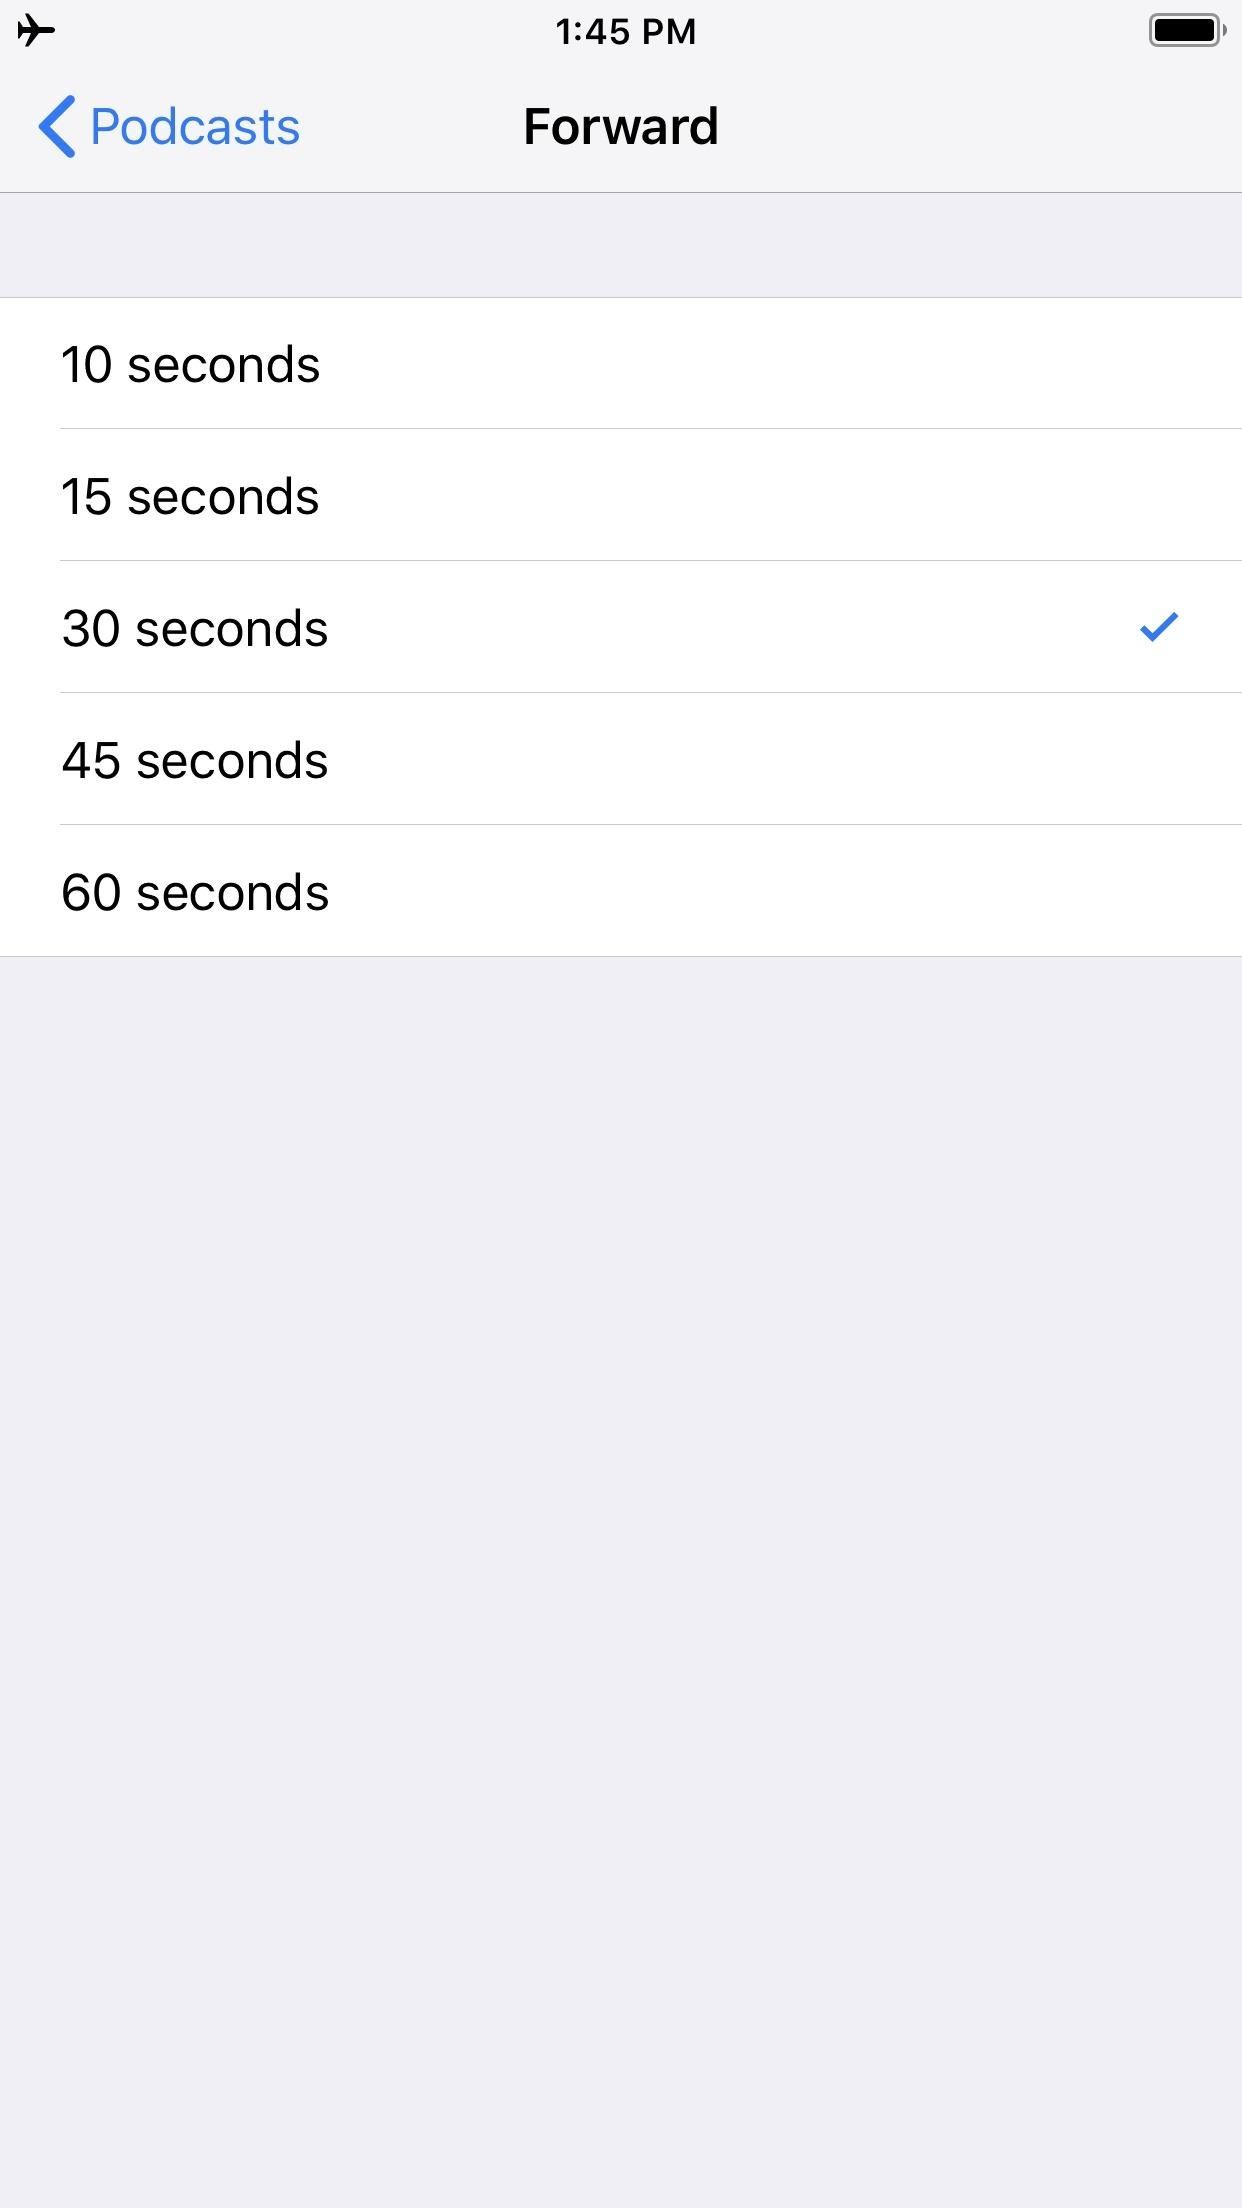 How to Customize Skip Length in Your iPhones Podcasts App